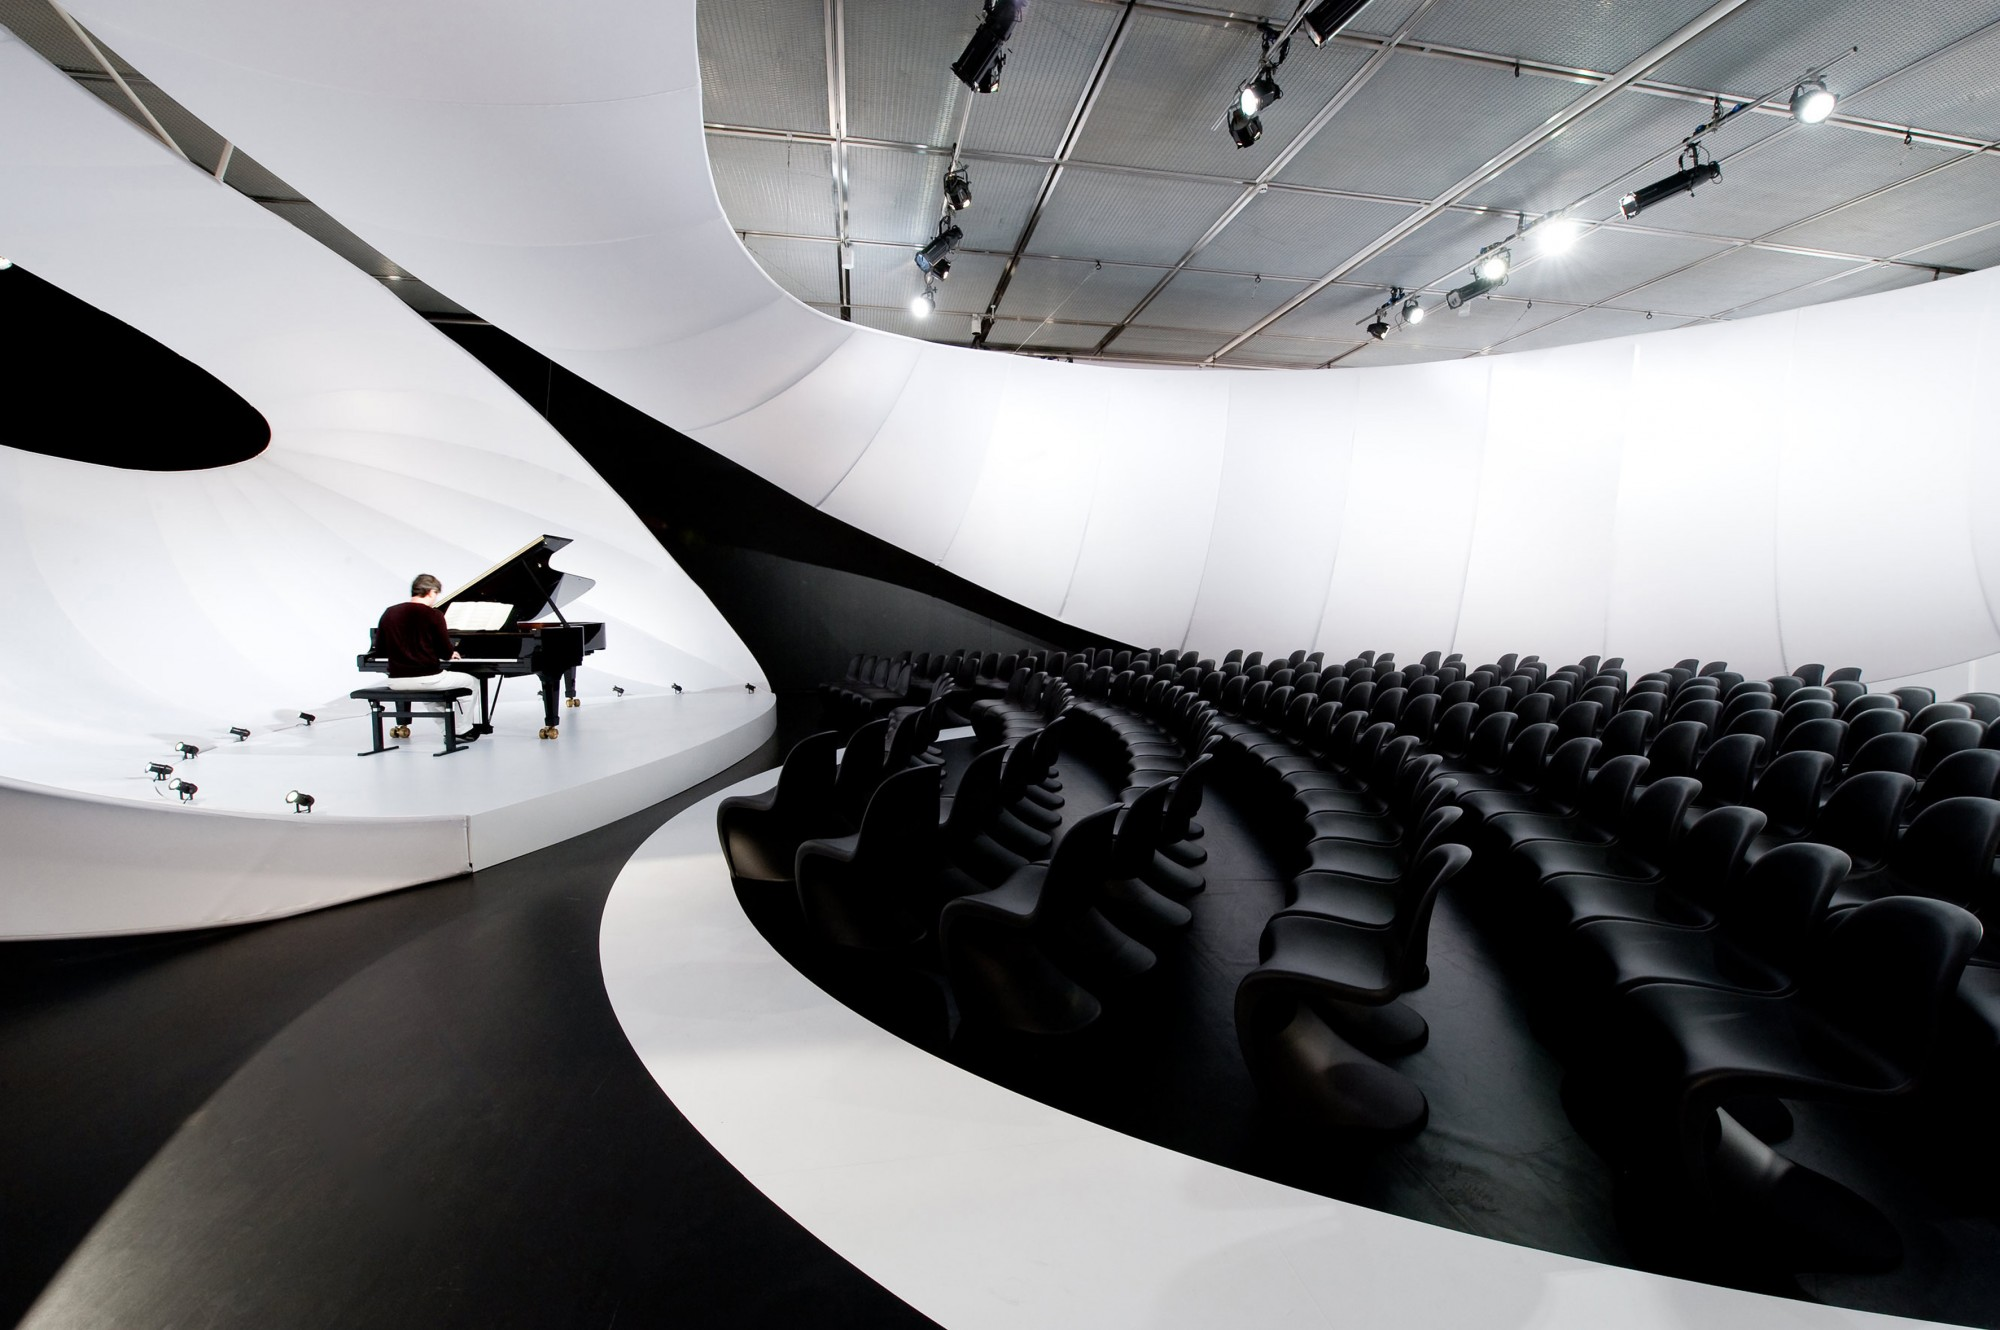 JS-Bach-Chamber-Music-Hall-by-Zaha-Hadid-Architects.01.jpg